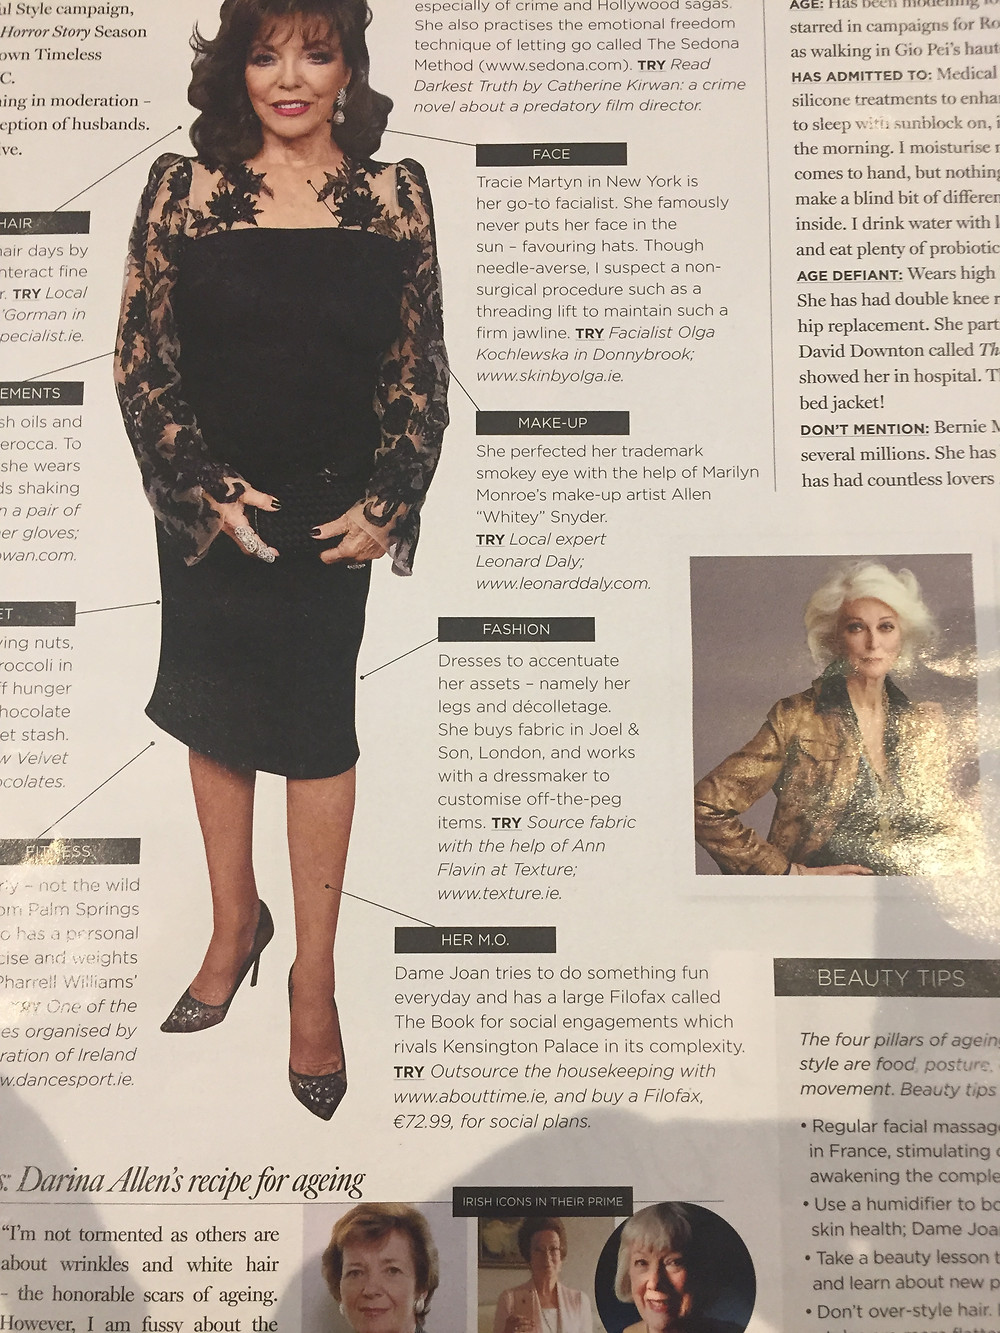 """""""Source fabric with the help of Ann Flavin at Texture"""" The Gloss Magazine"""